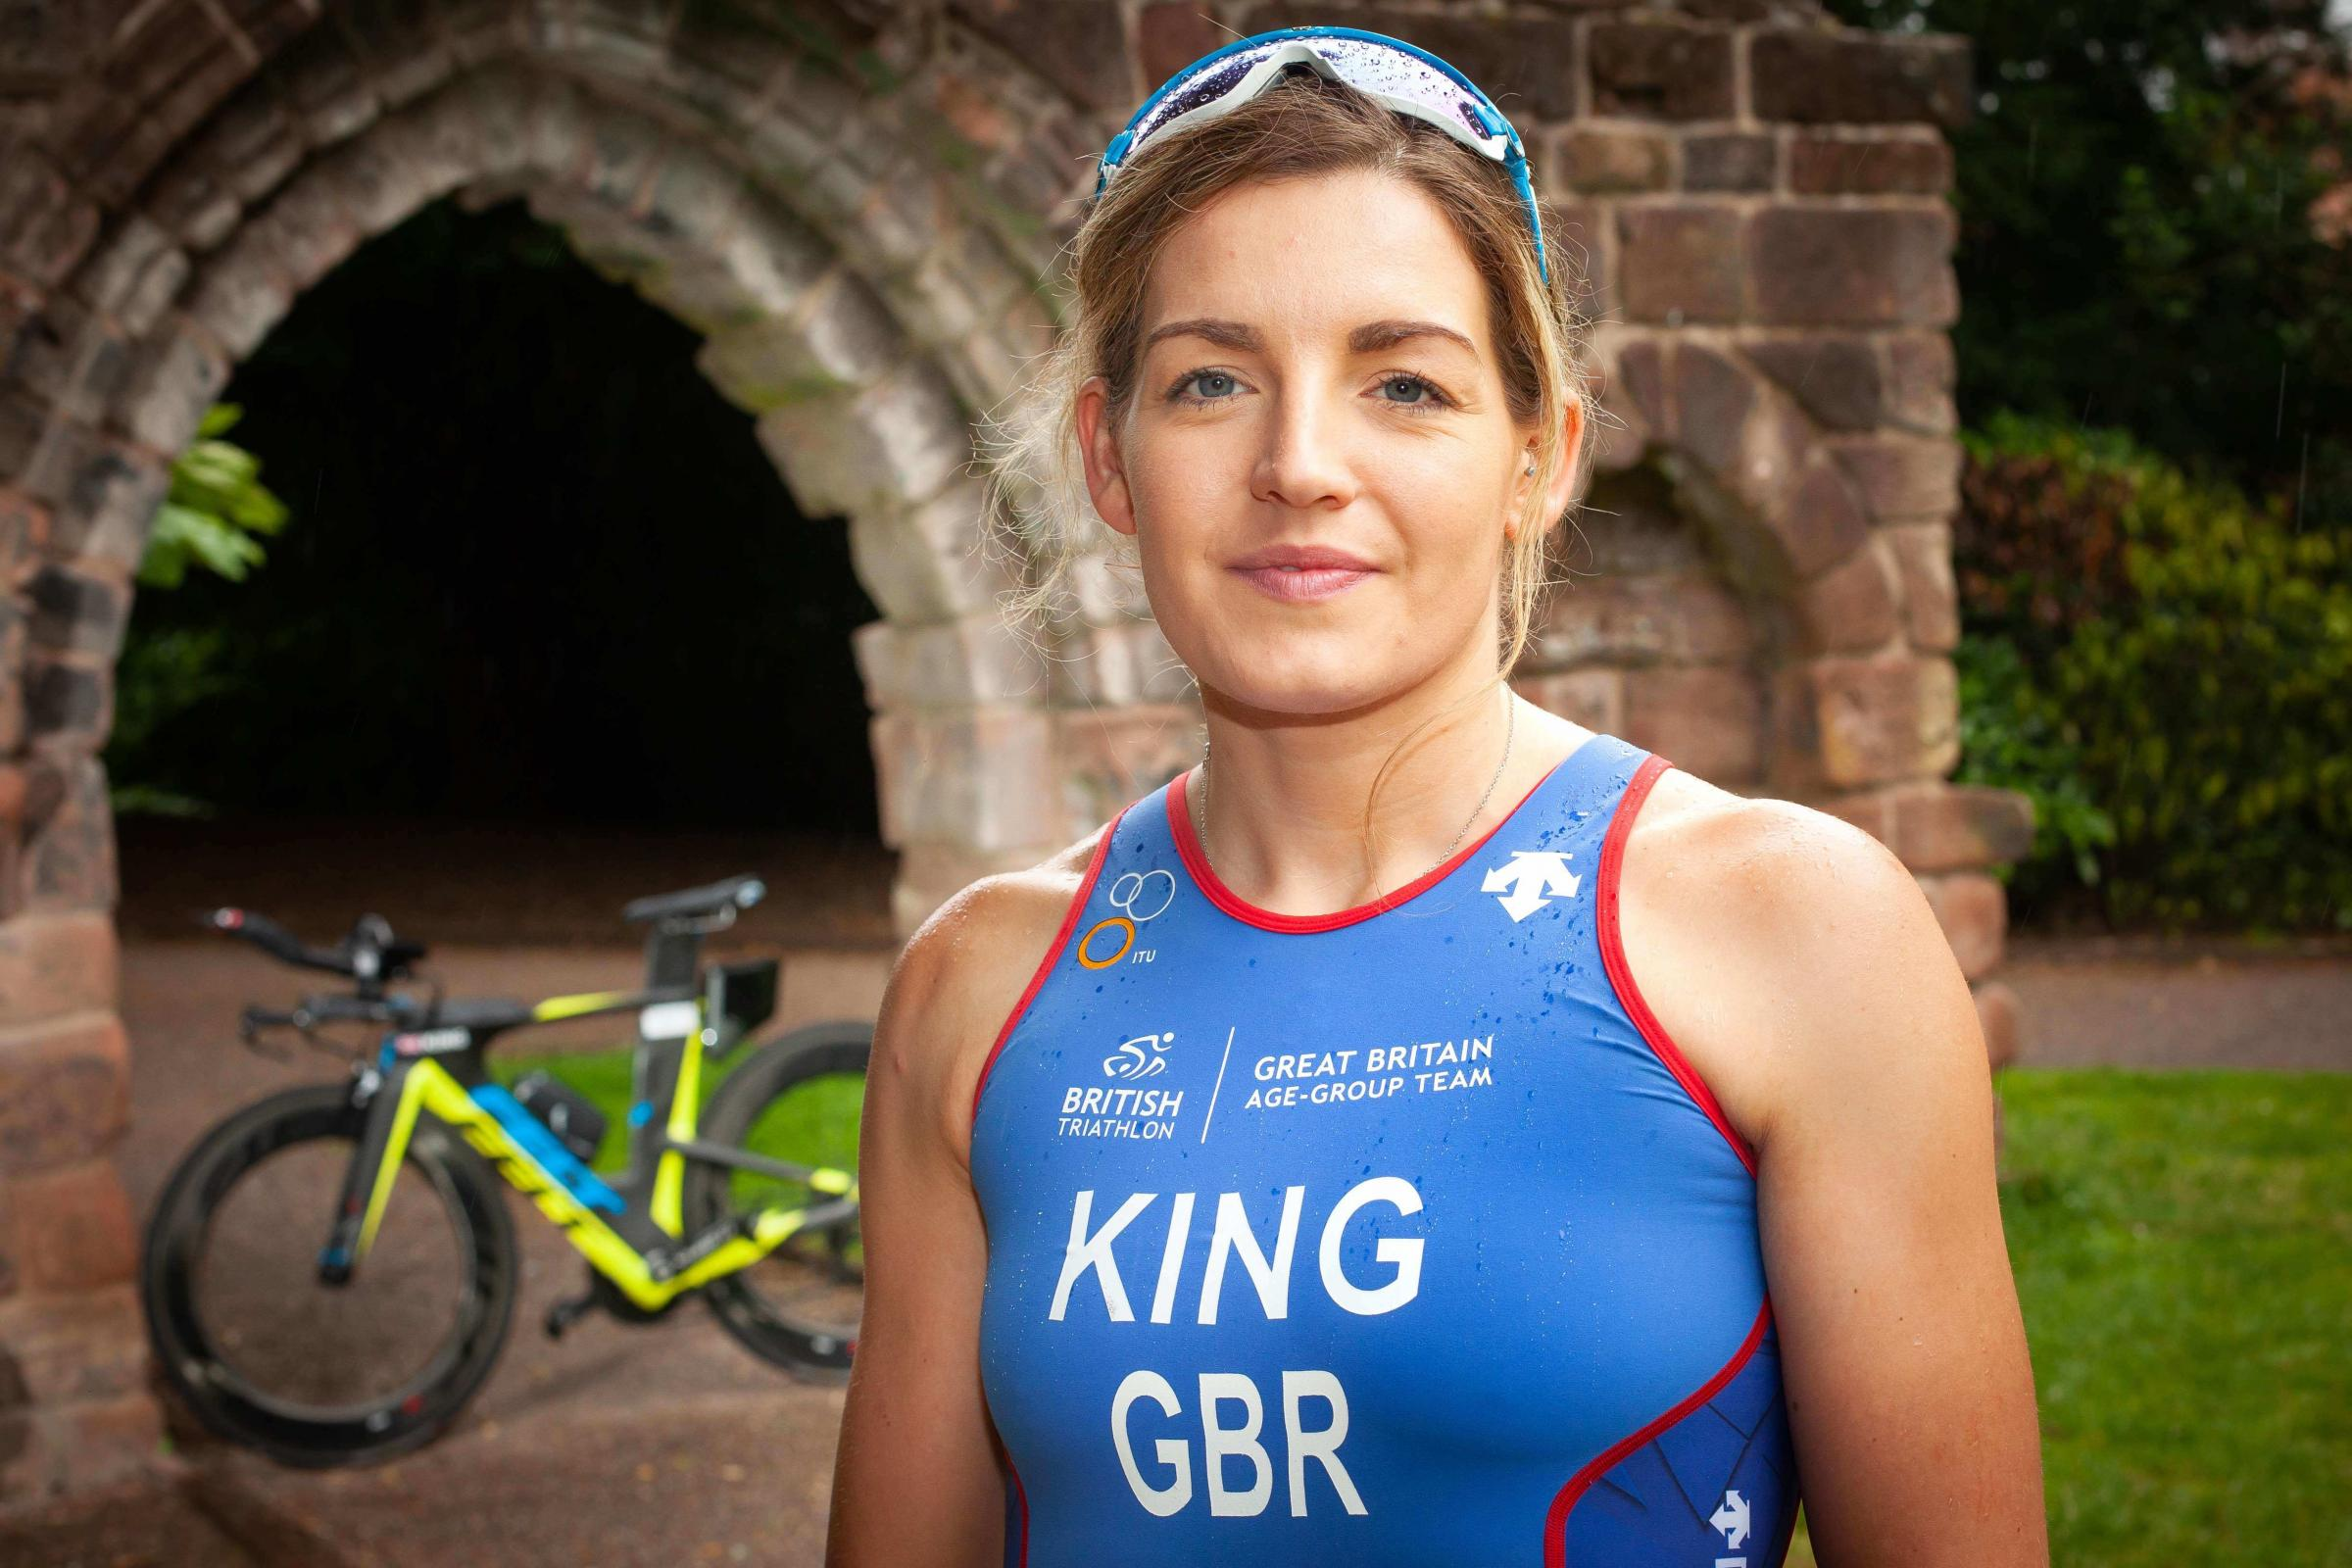 Chester solicitor Steph battles 33C heat to record best Ironman triathlon finish